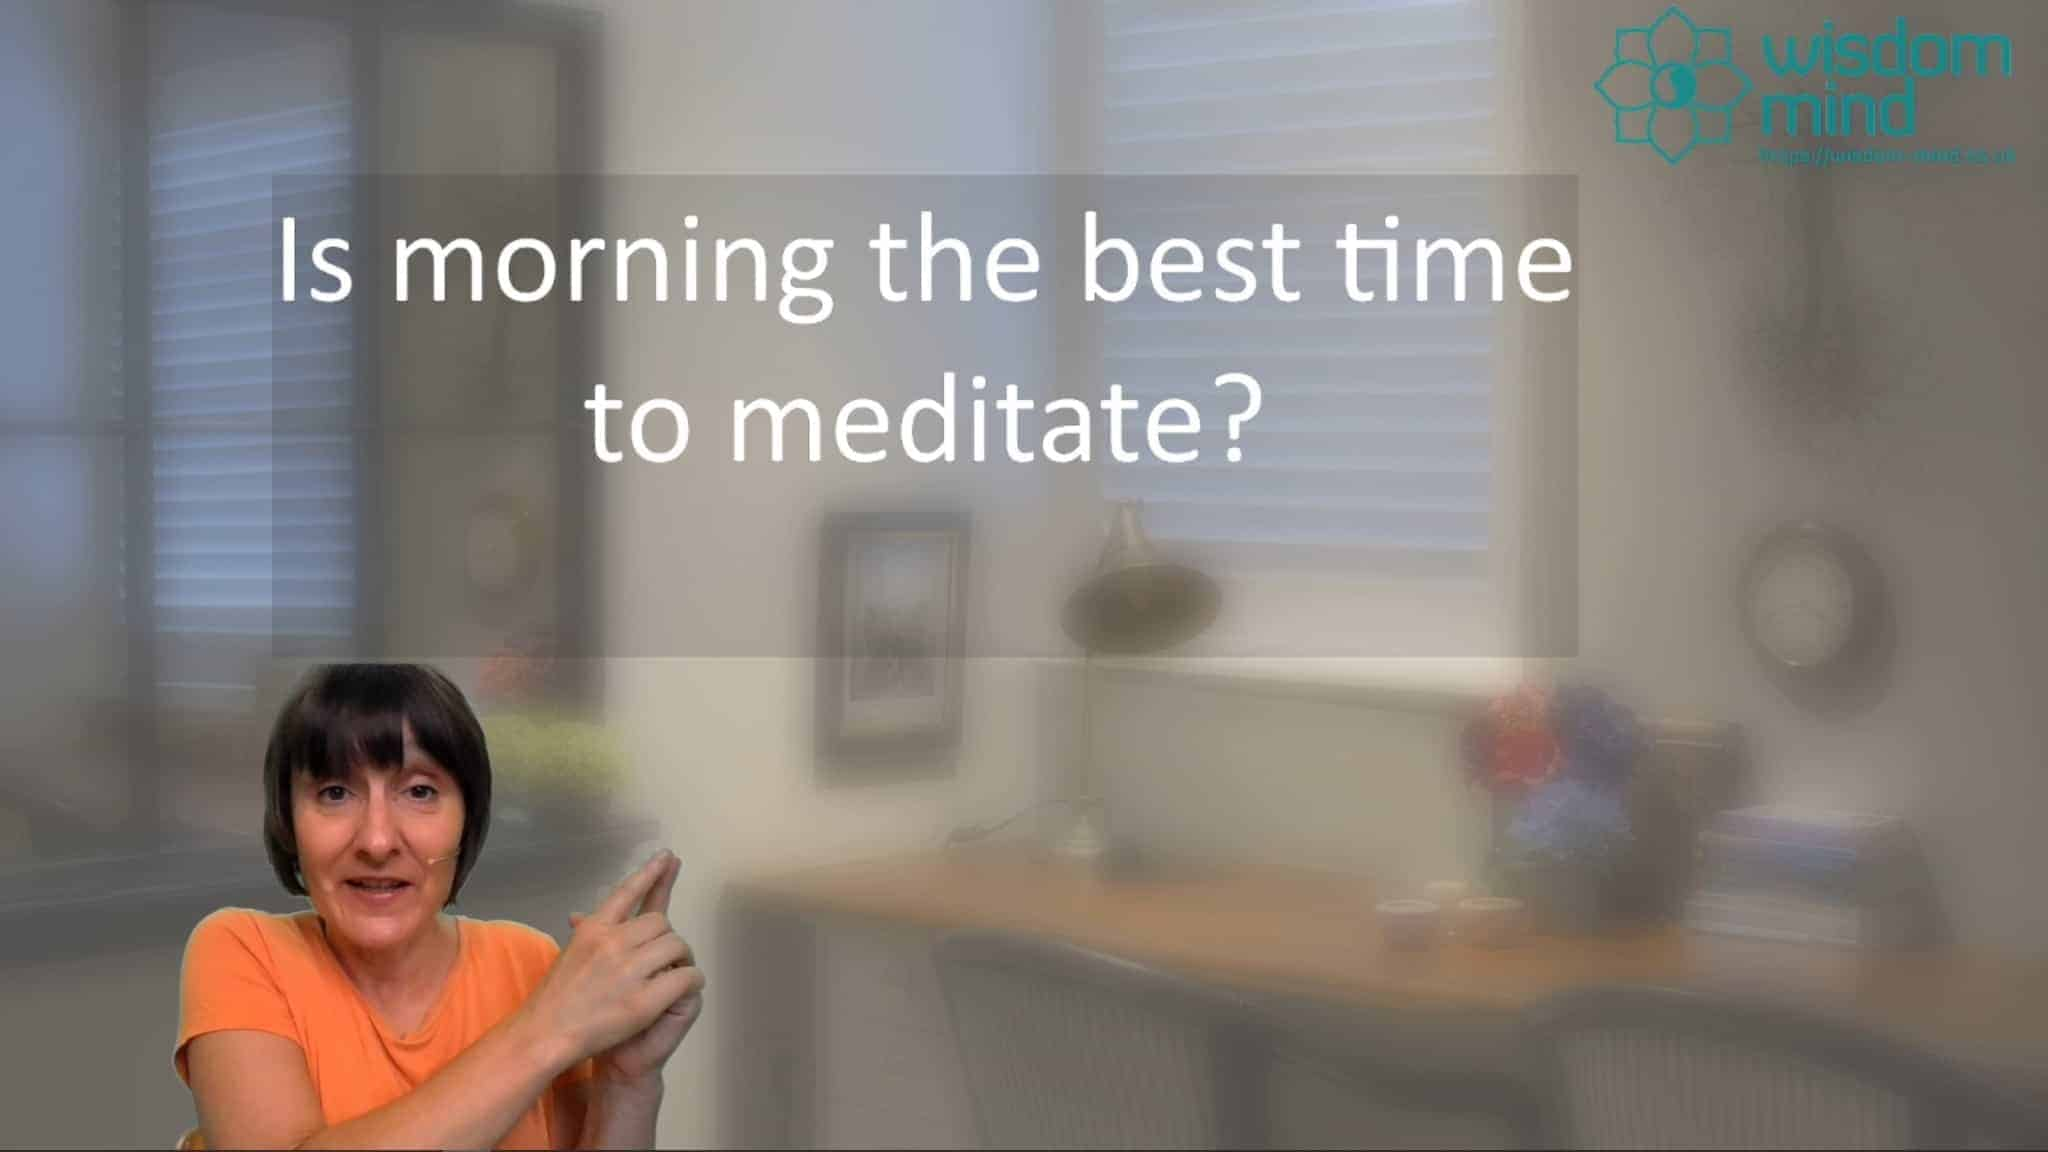 Is the morning the best time to meditate